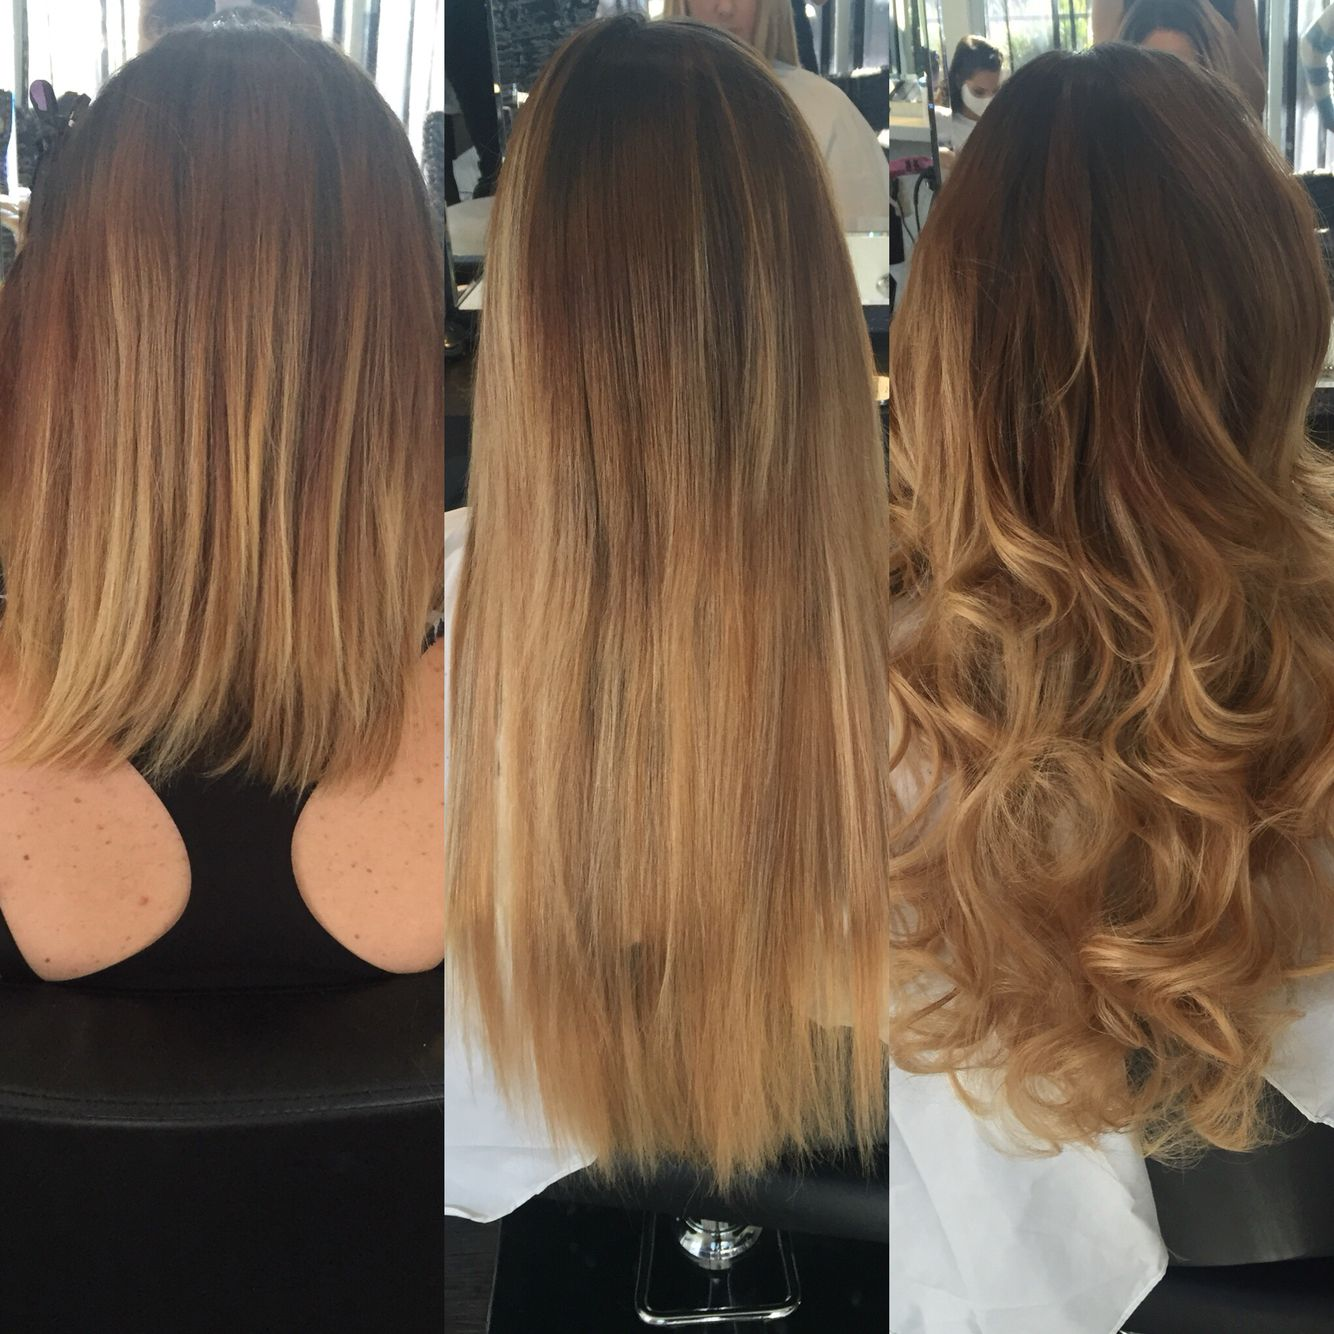 Tapeextensions Hair Extensions Before And After Hair